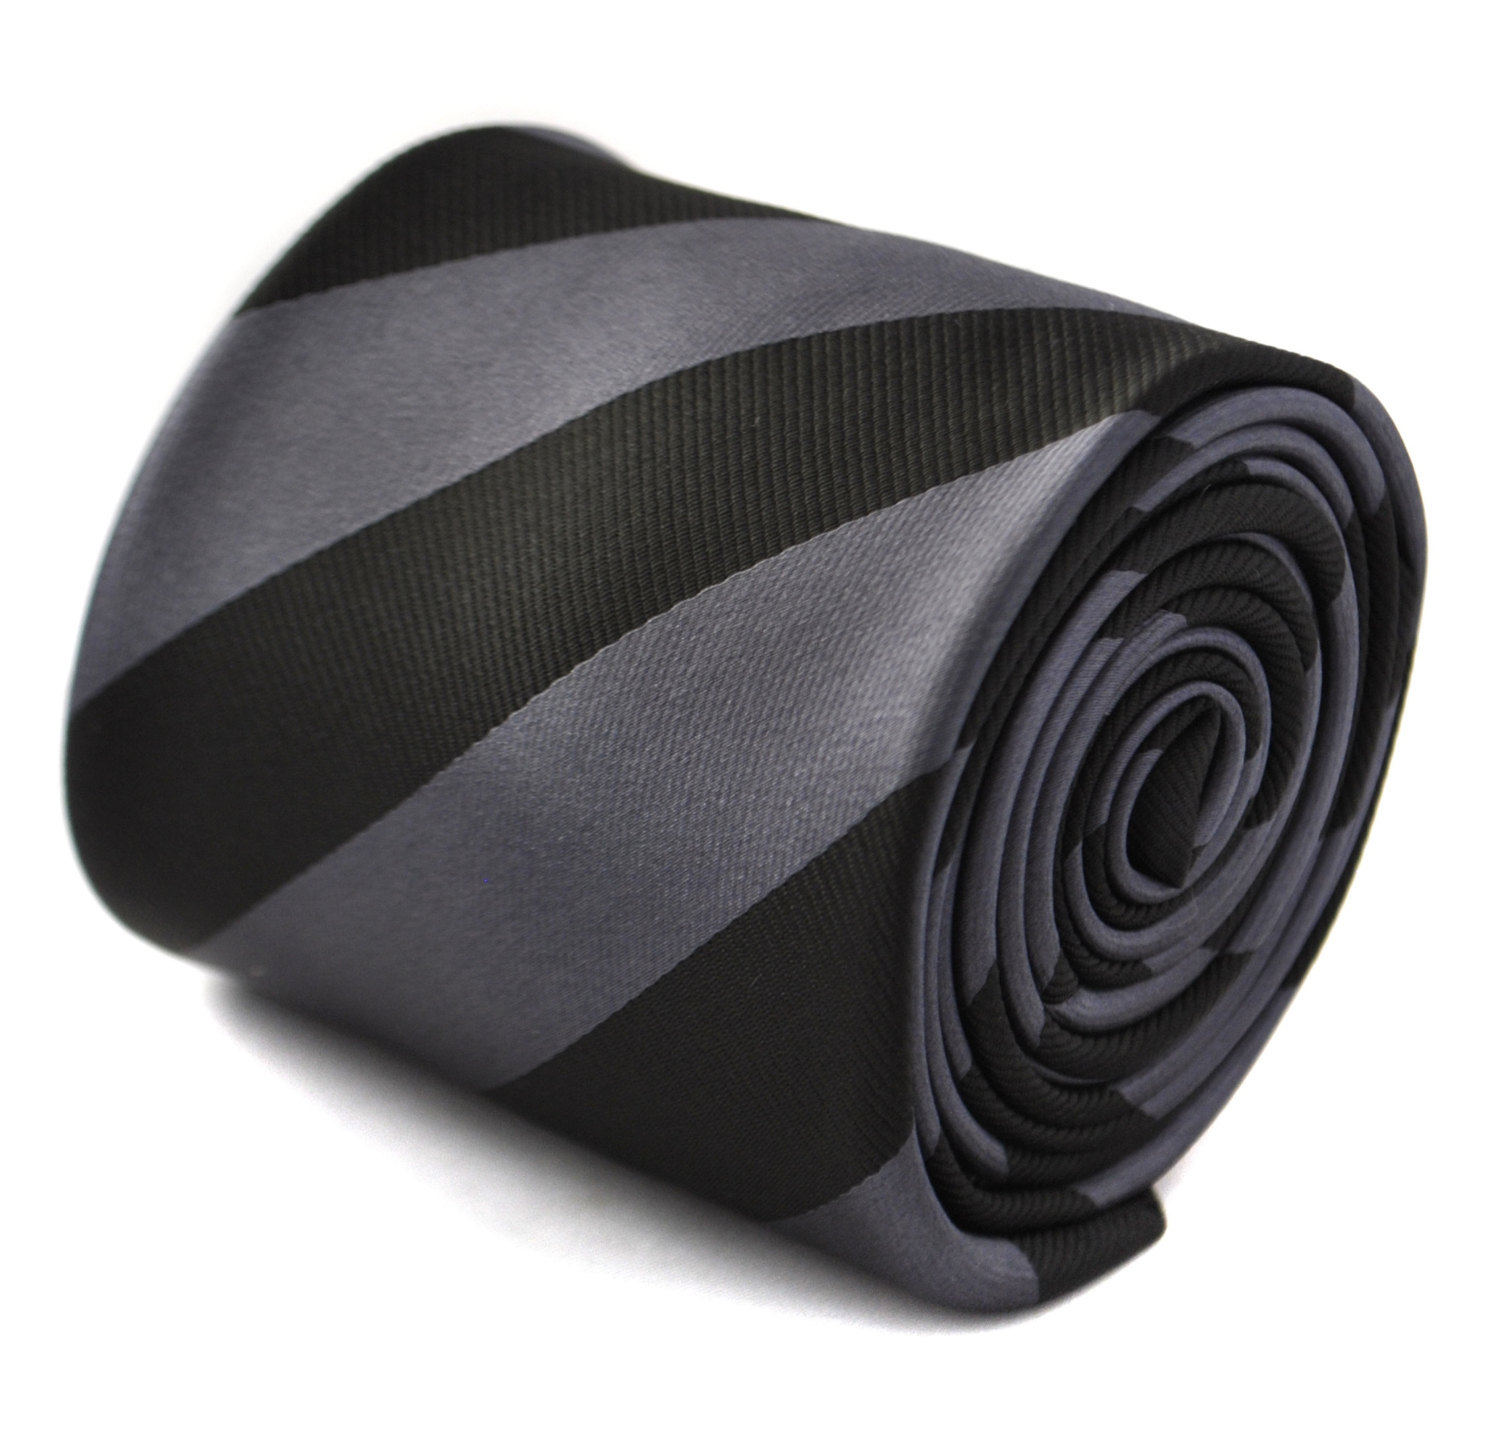 Grey and black barber striped tie with signature floral design to the rear by Fr